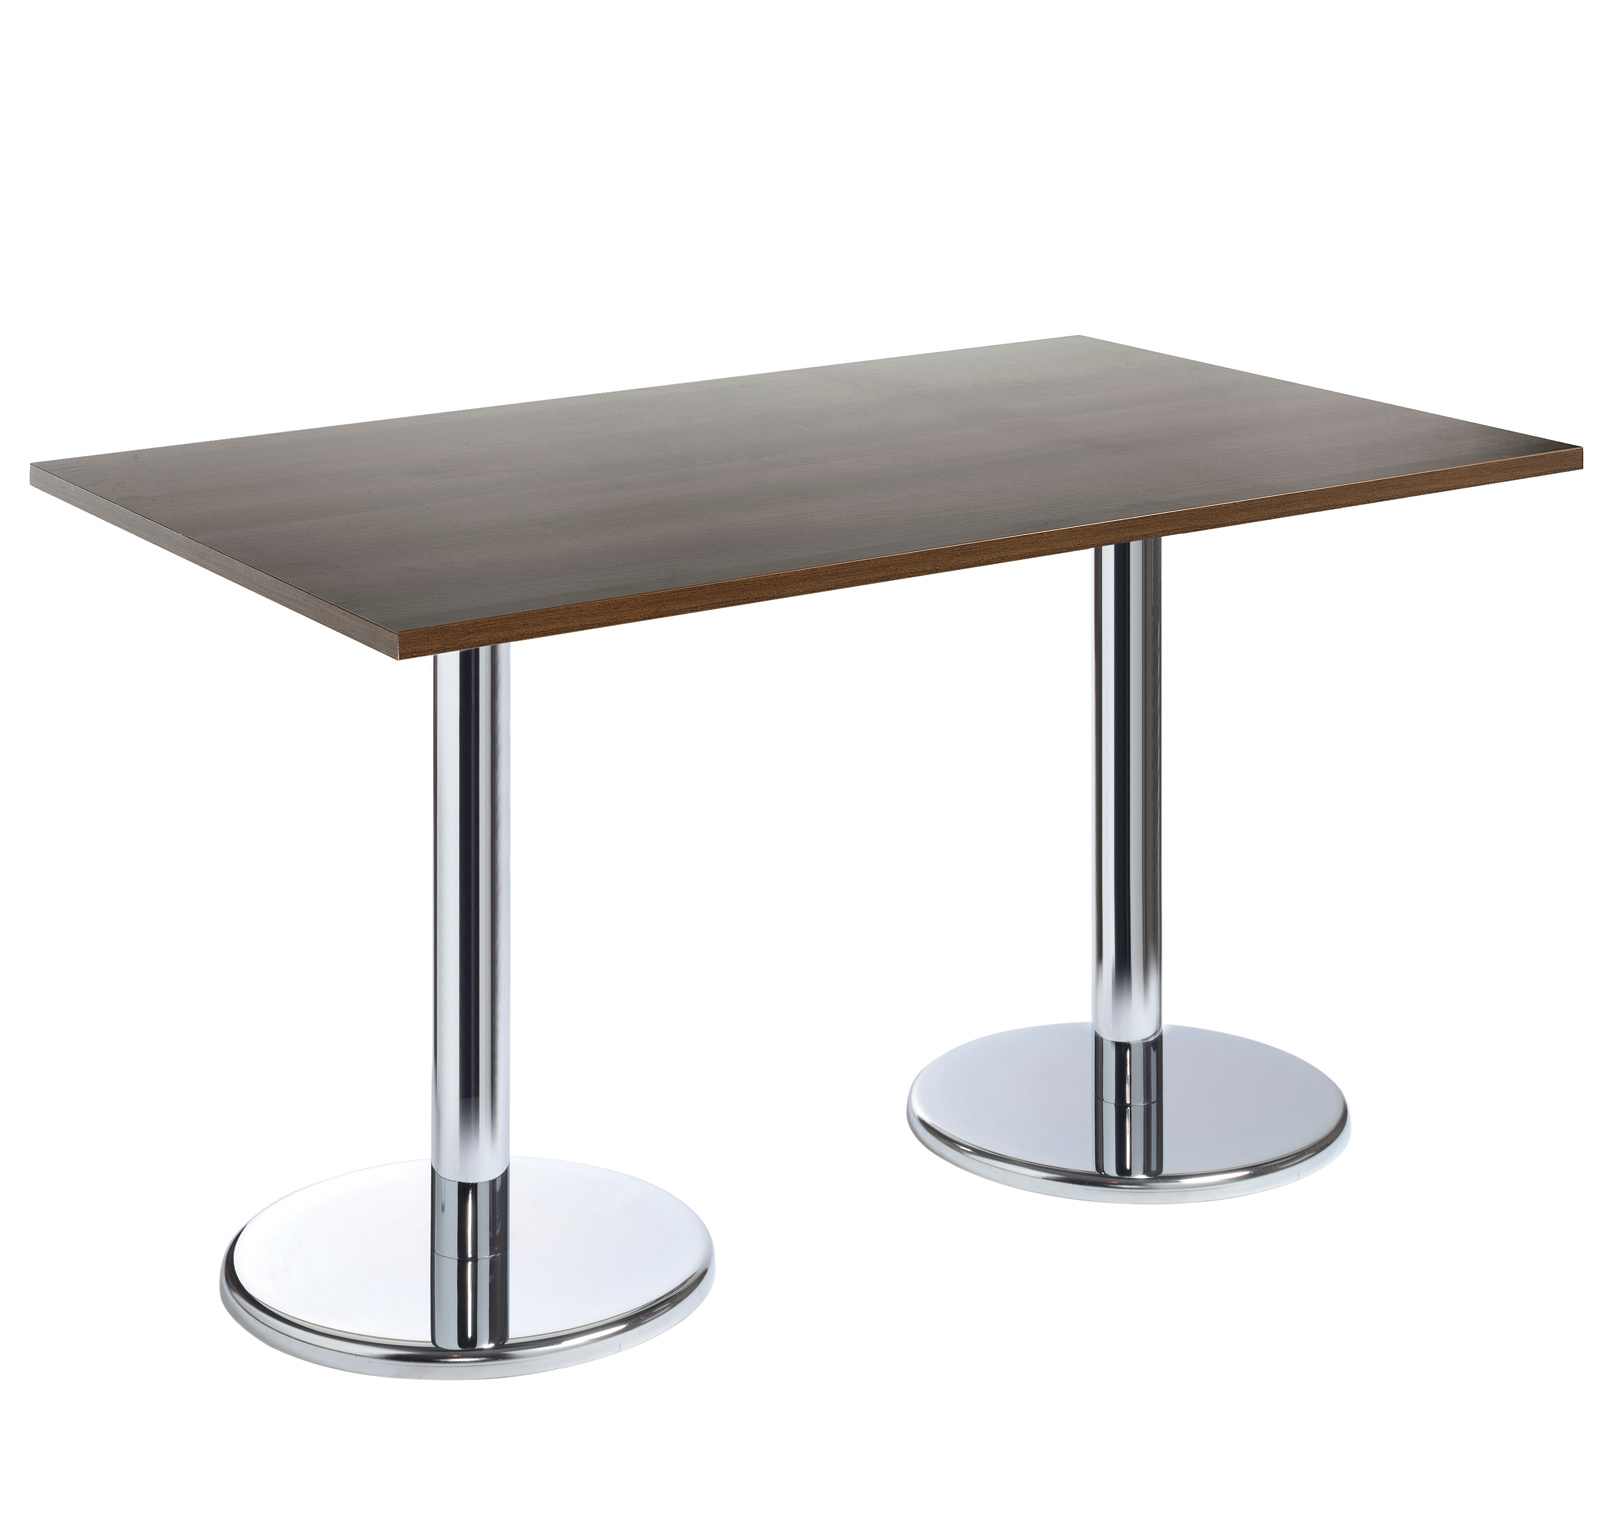 Pisa rectangular table with round chrome base 1300mm x 800mm - walnut